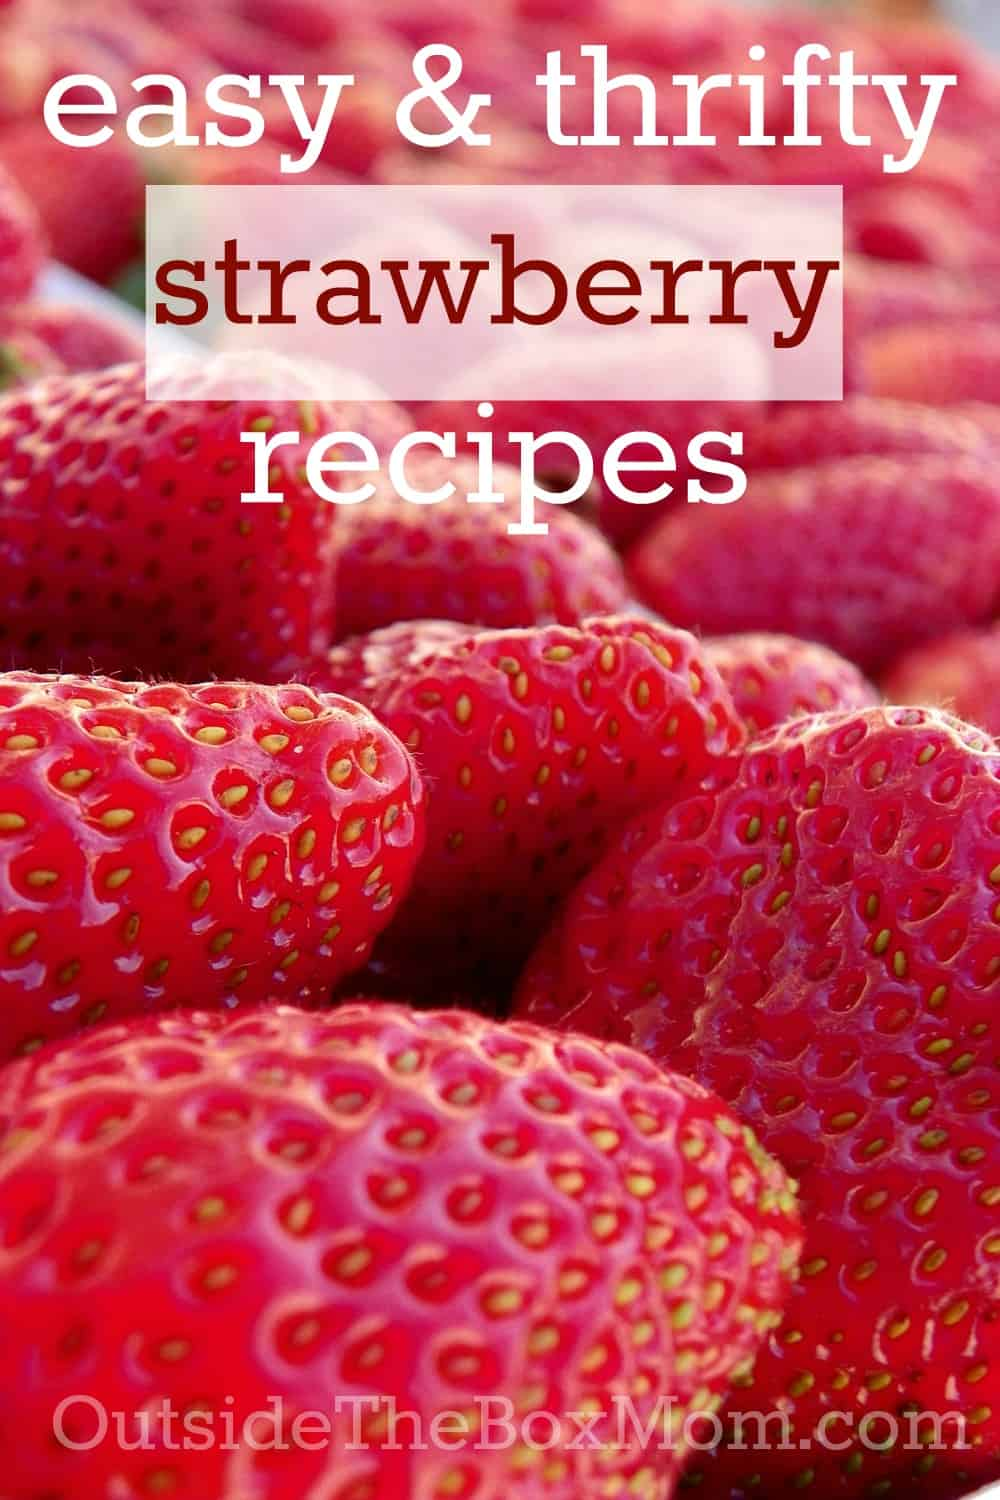 Are you looking for a thrifty strawberry recipe? Look no further. I'll tell you how to save money on strawberries, handle them, and get you started with a list of easy and thrifty strawberry recipes.